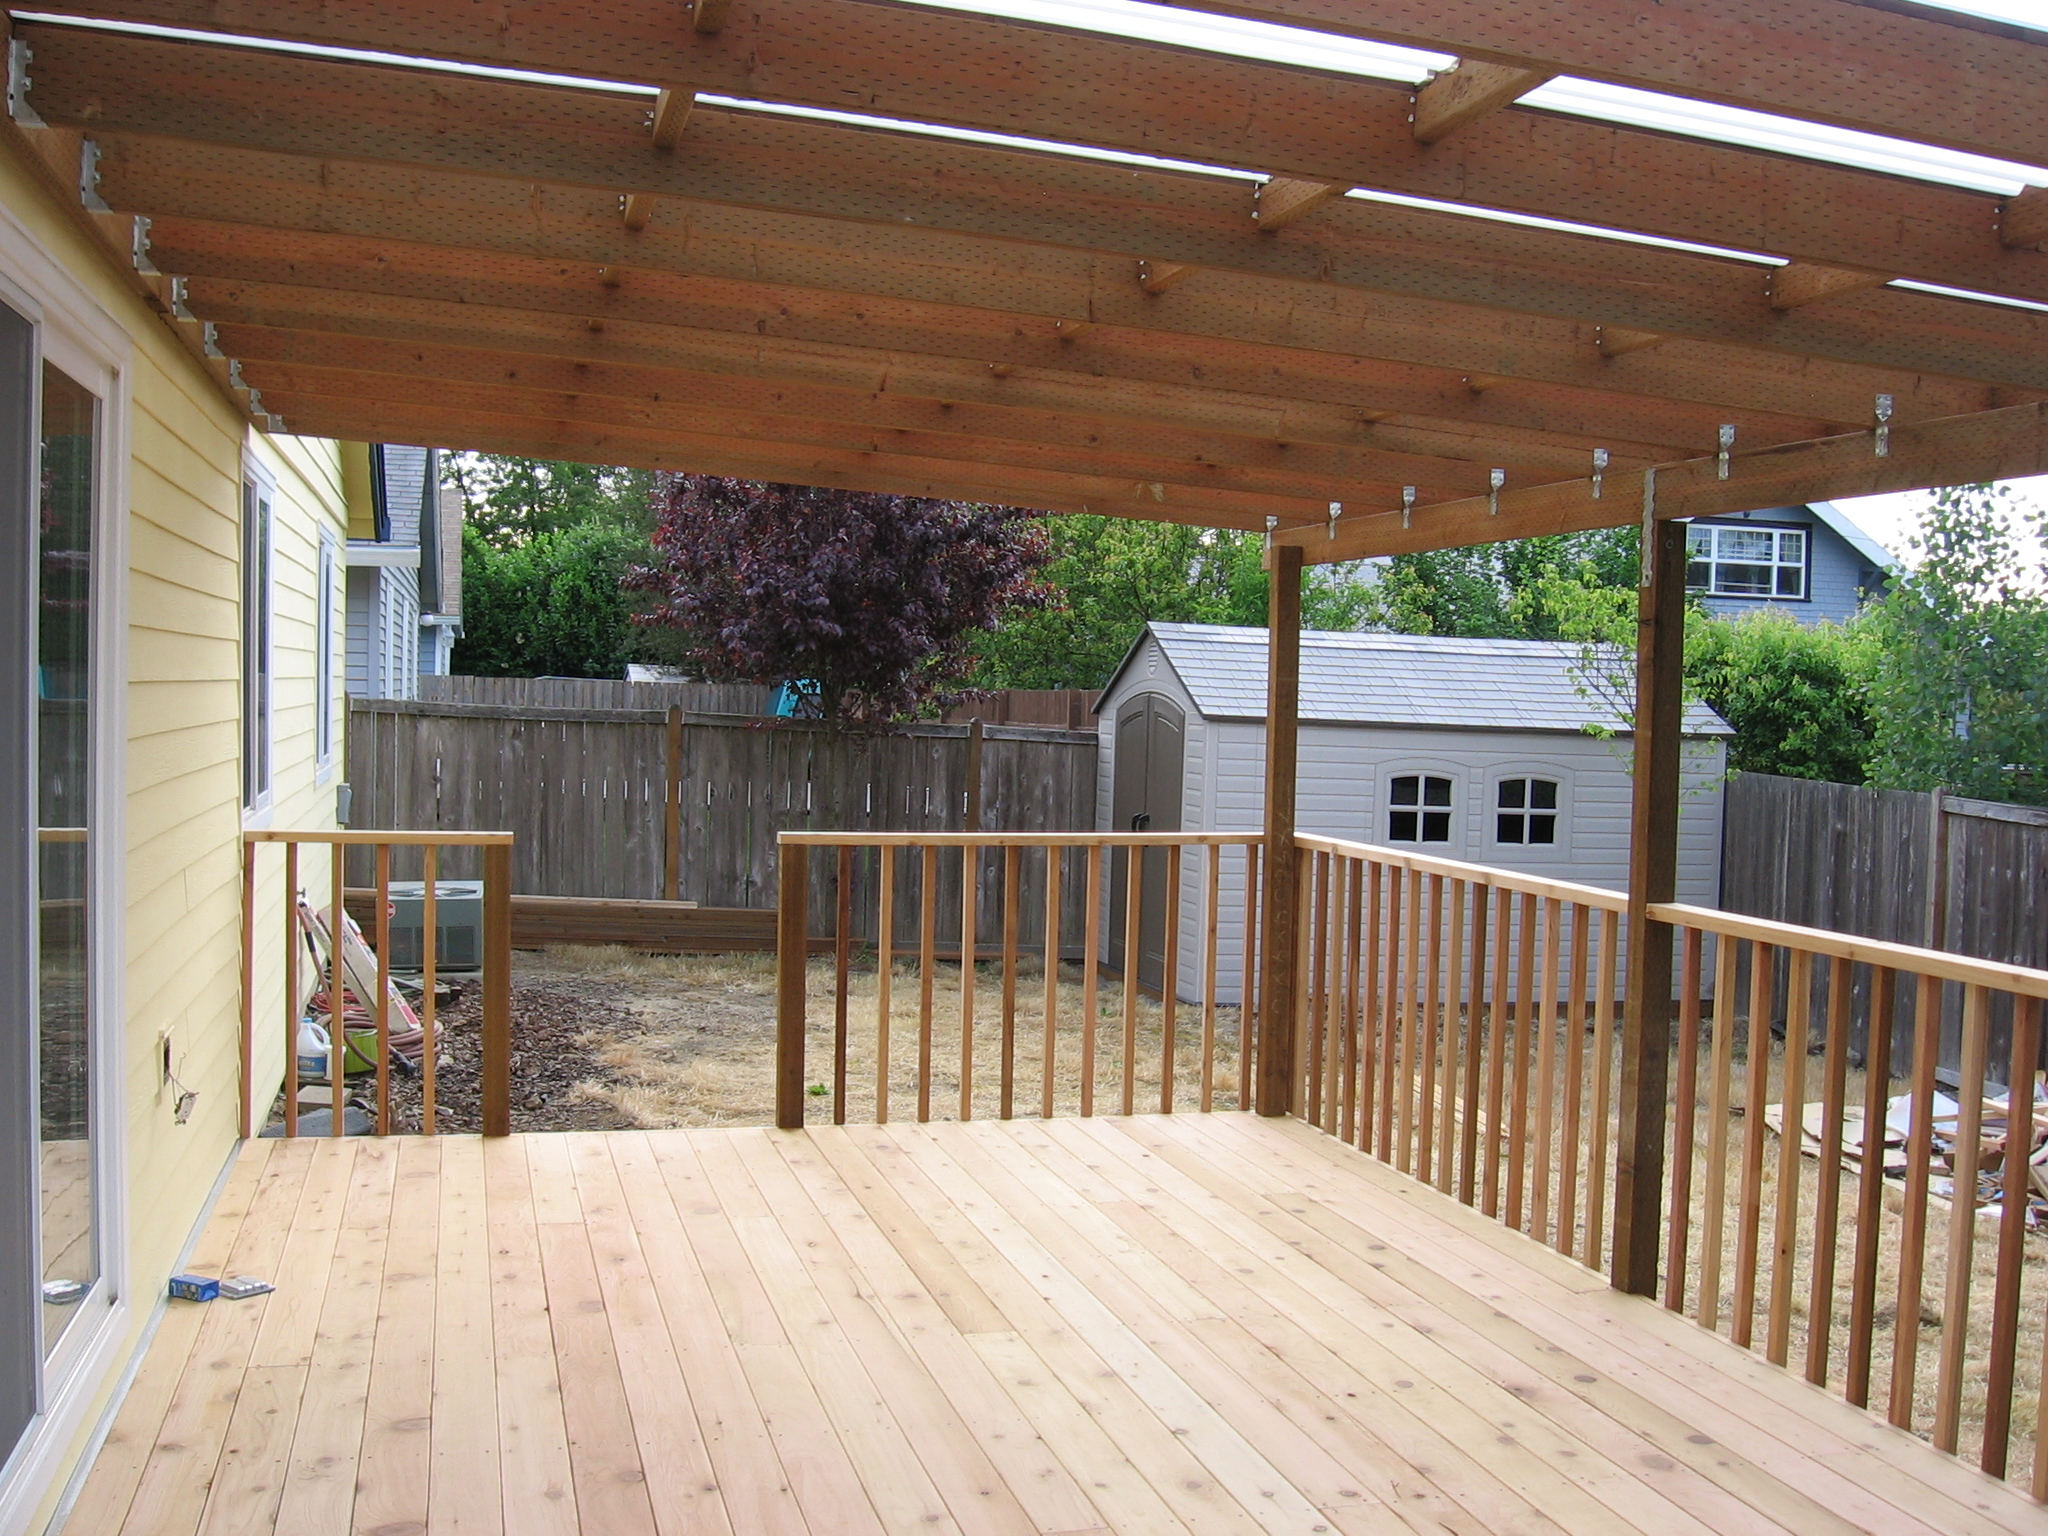 Deck Cover Ideas - HomesFeed